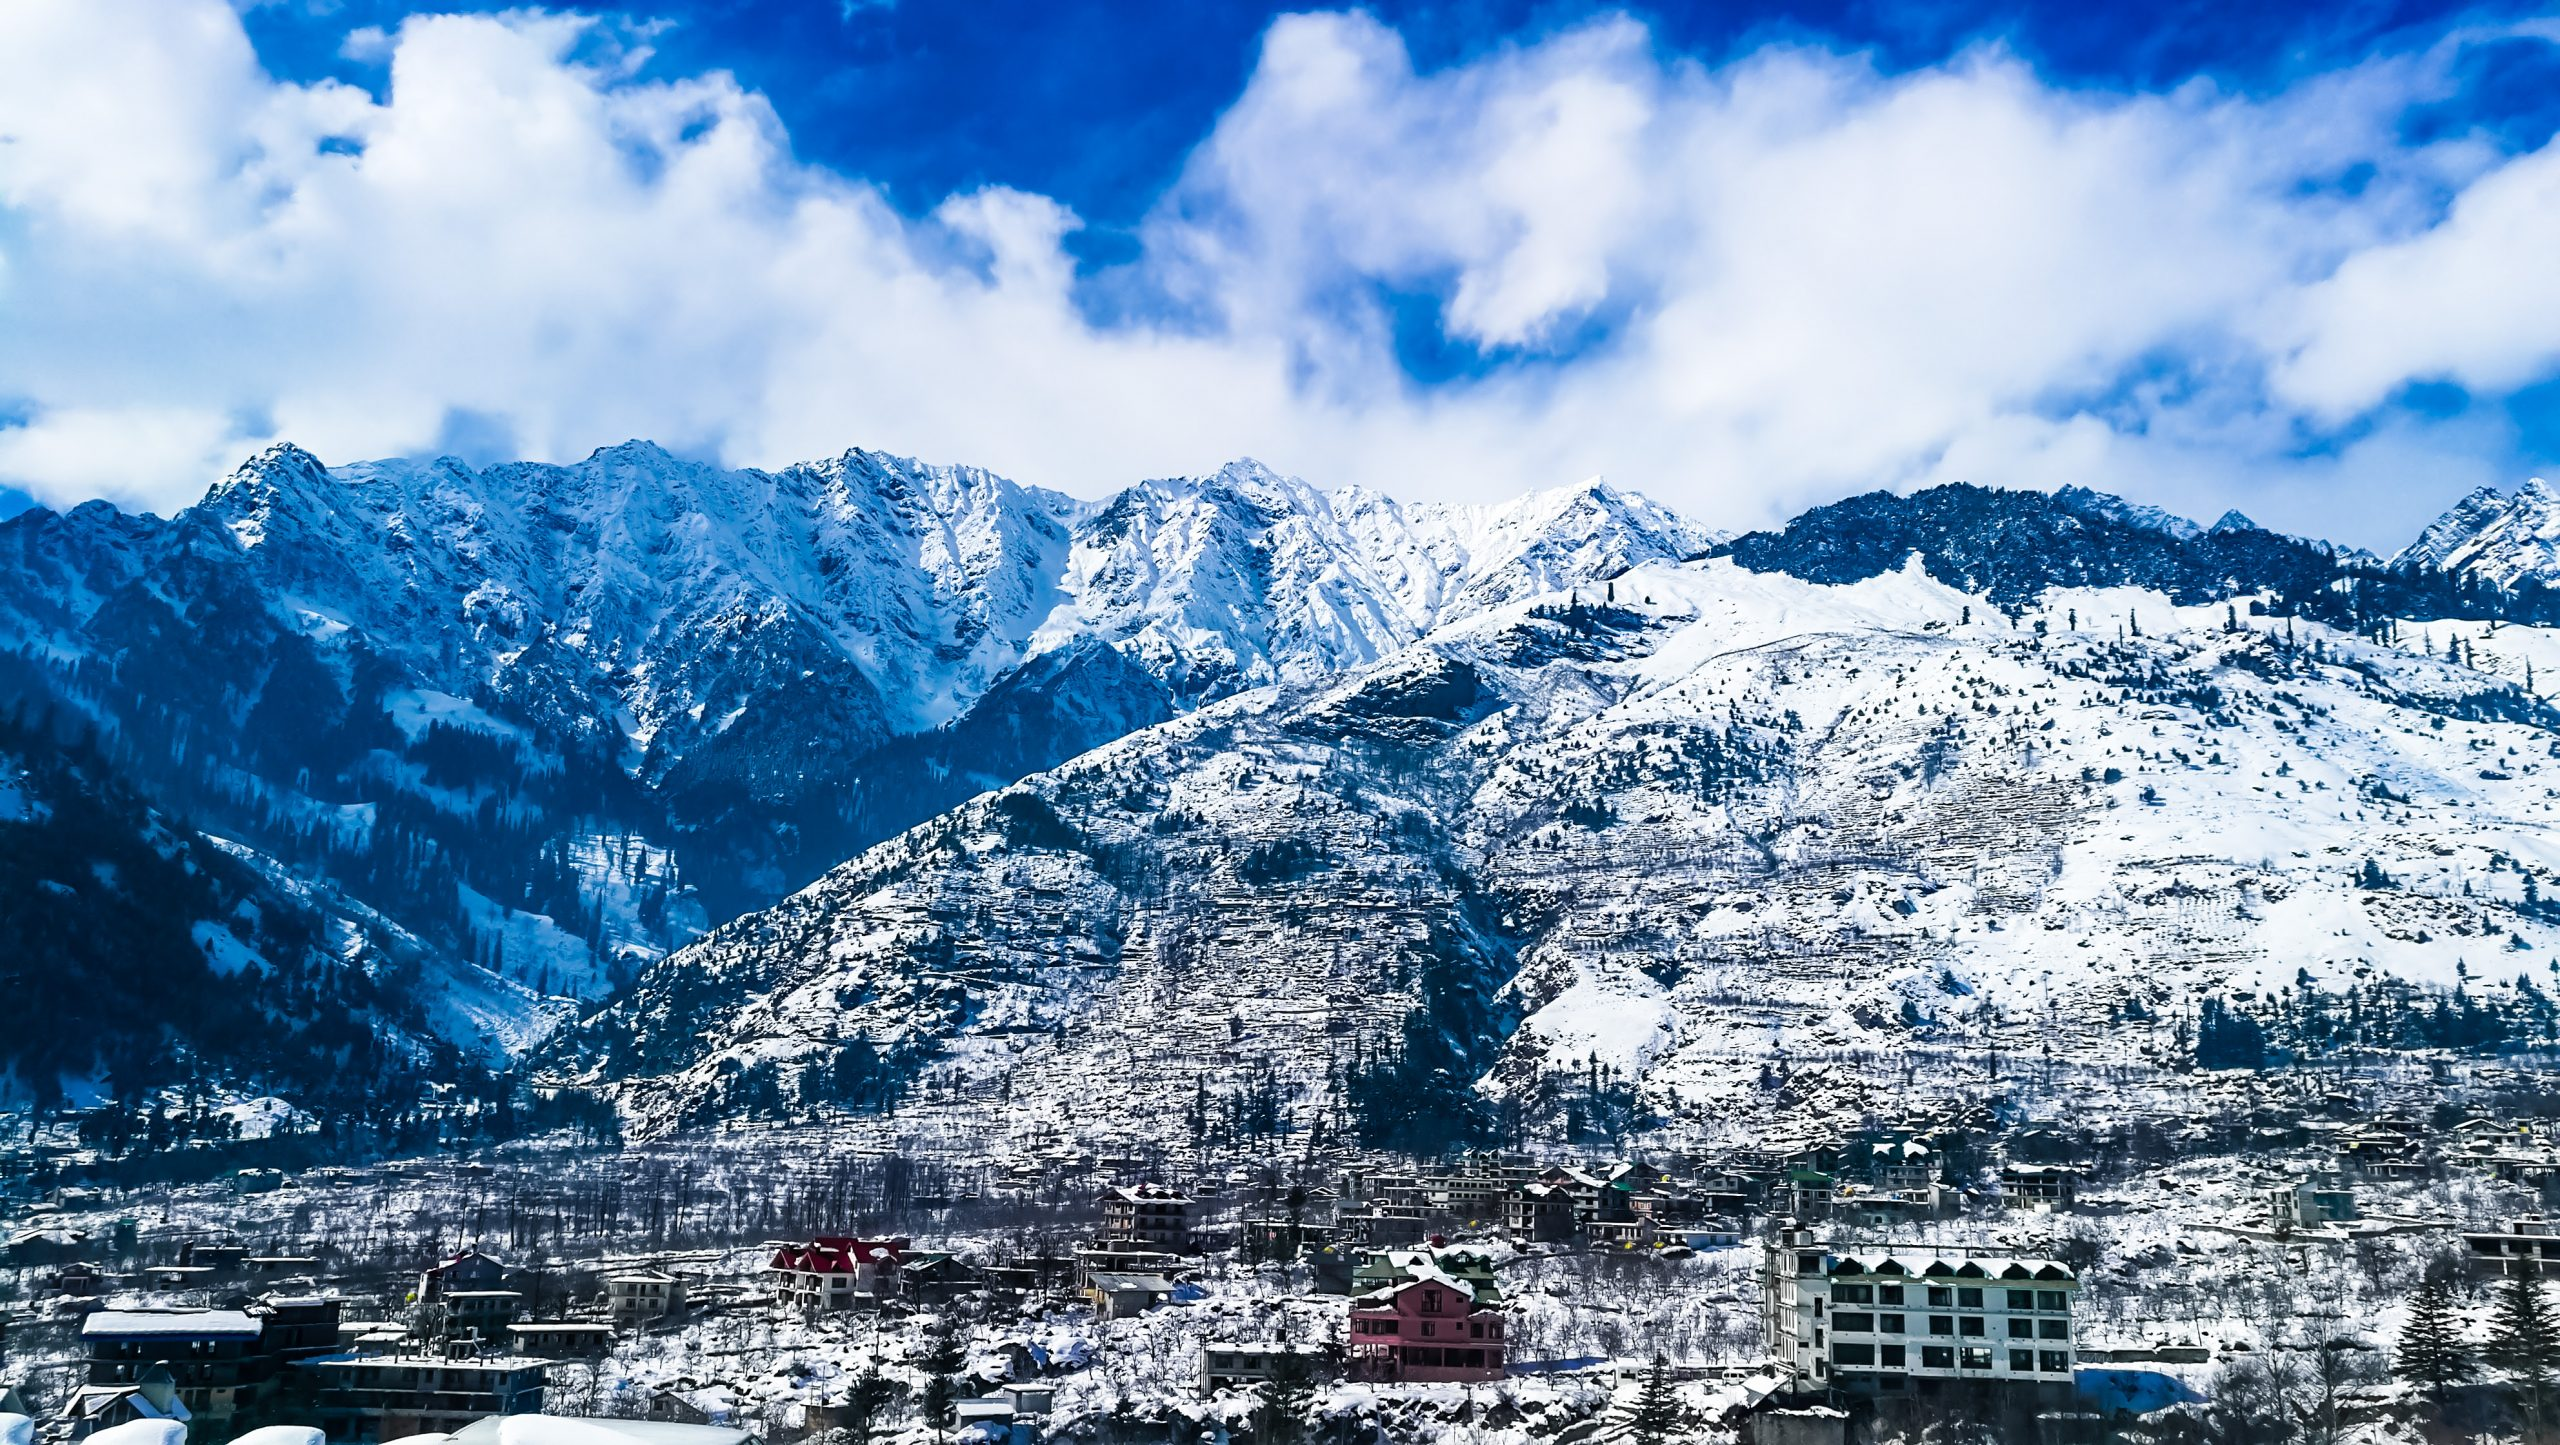 Snowy mountains of Manali